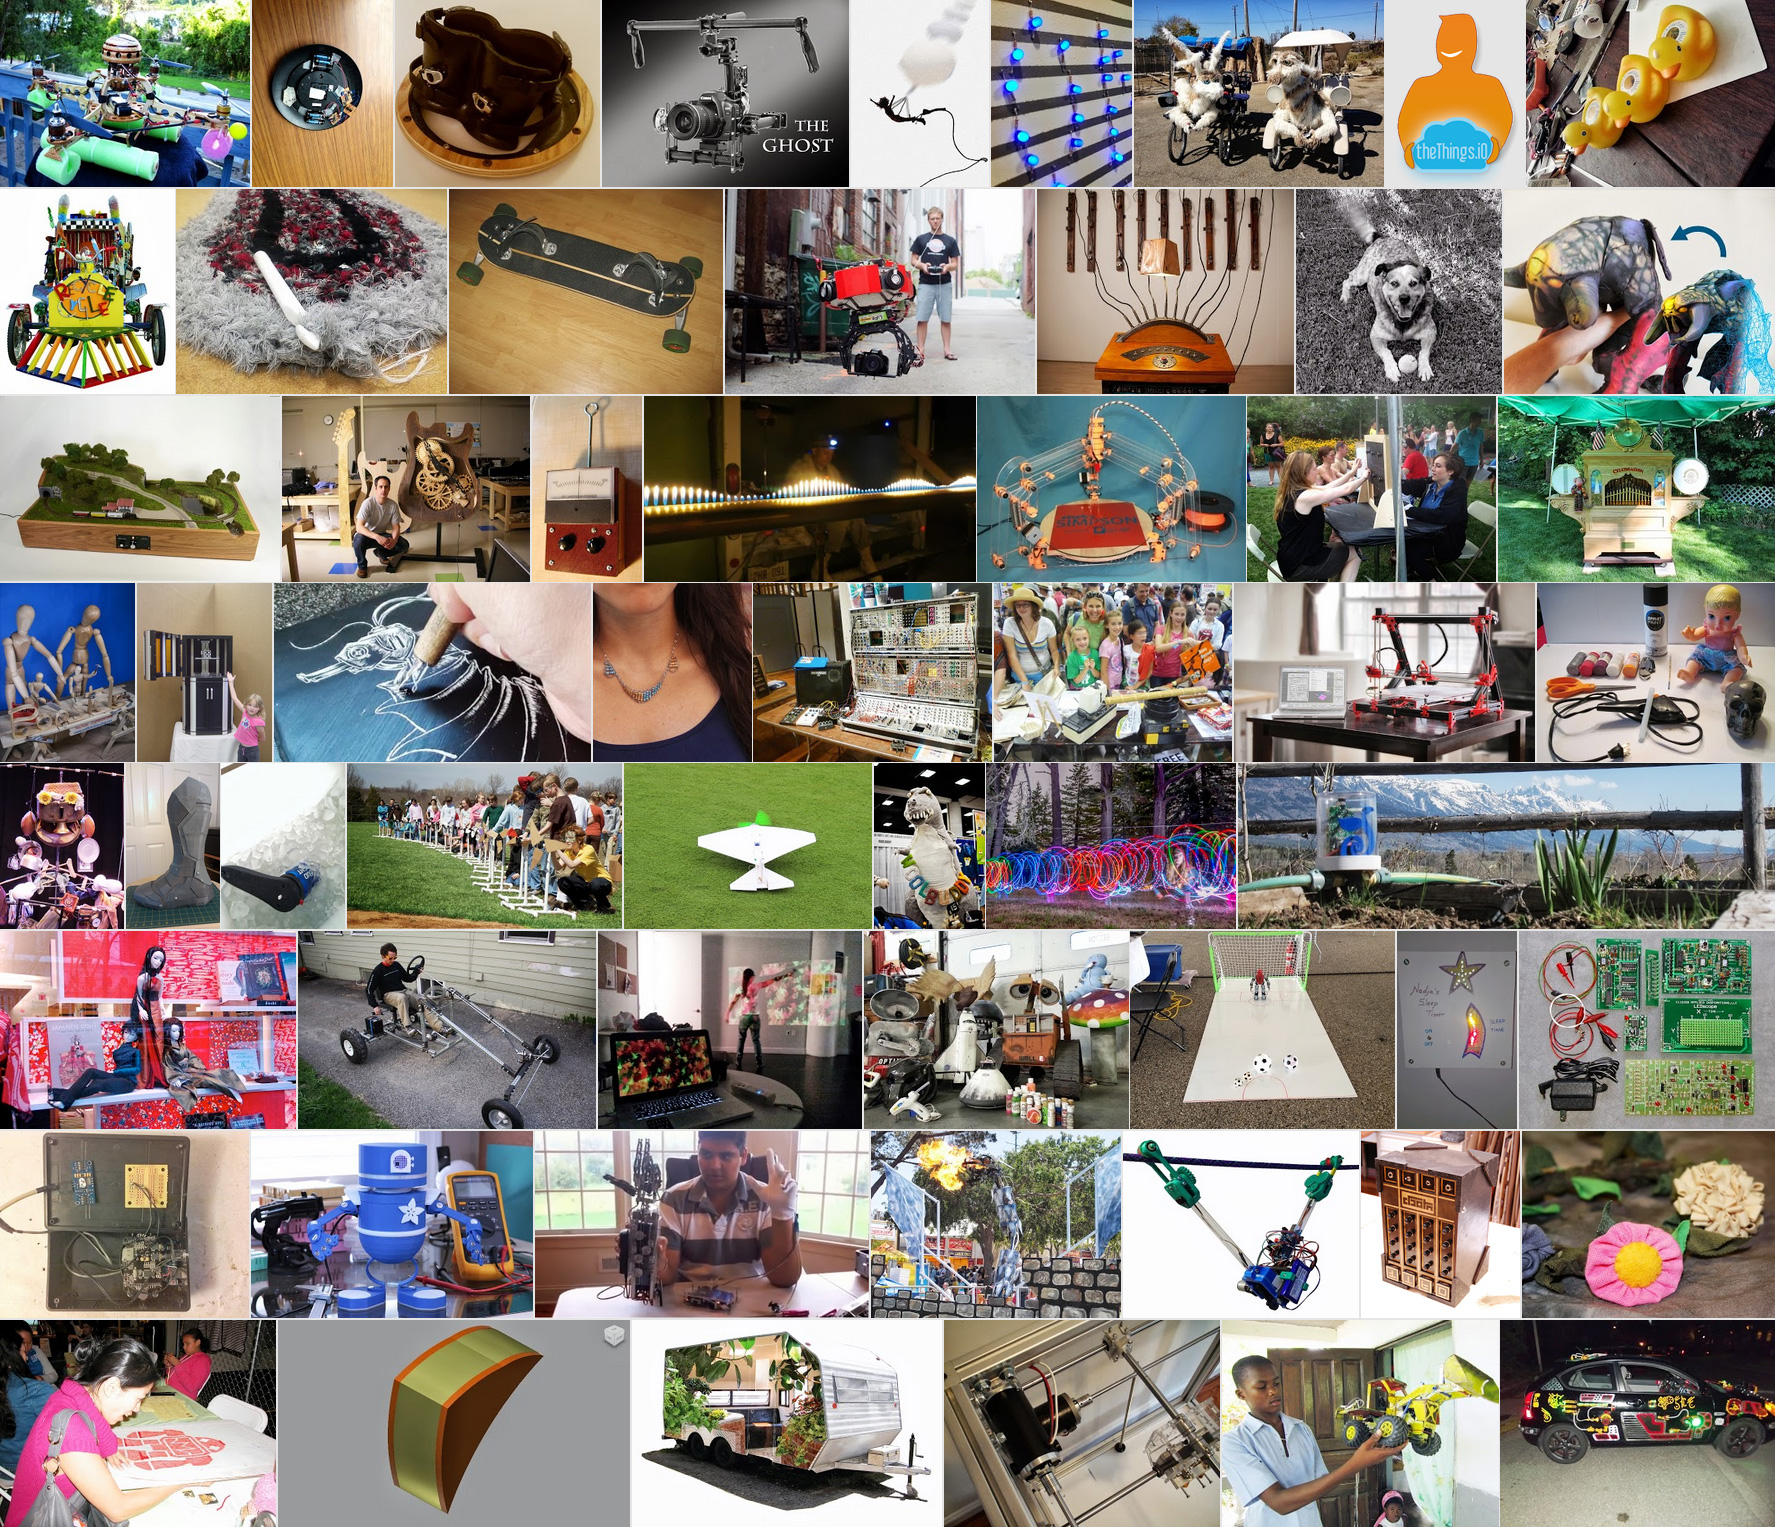 Cast Your Votes on the Road to Maker Faire Challenge & Help Send One Maker to NYC!